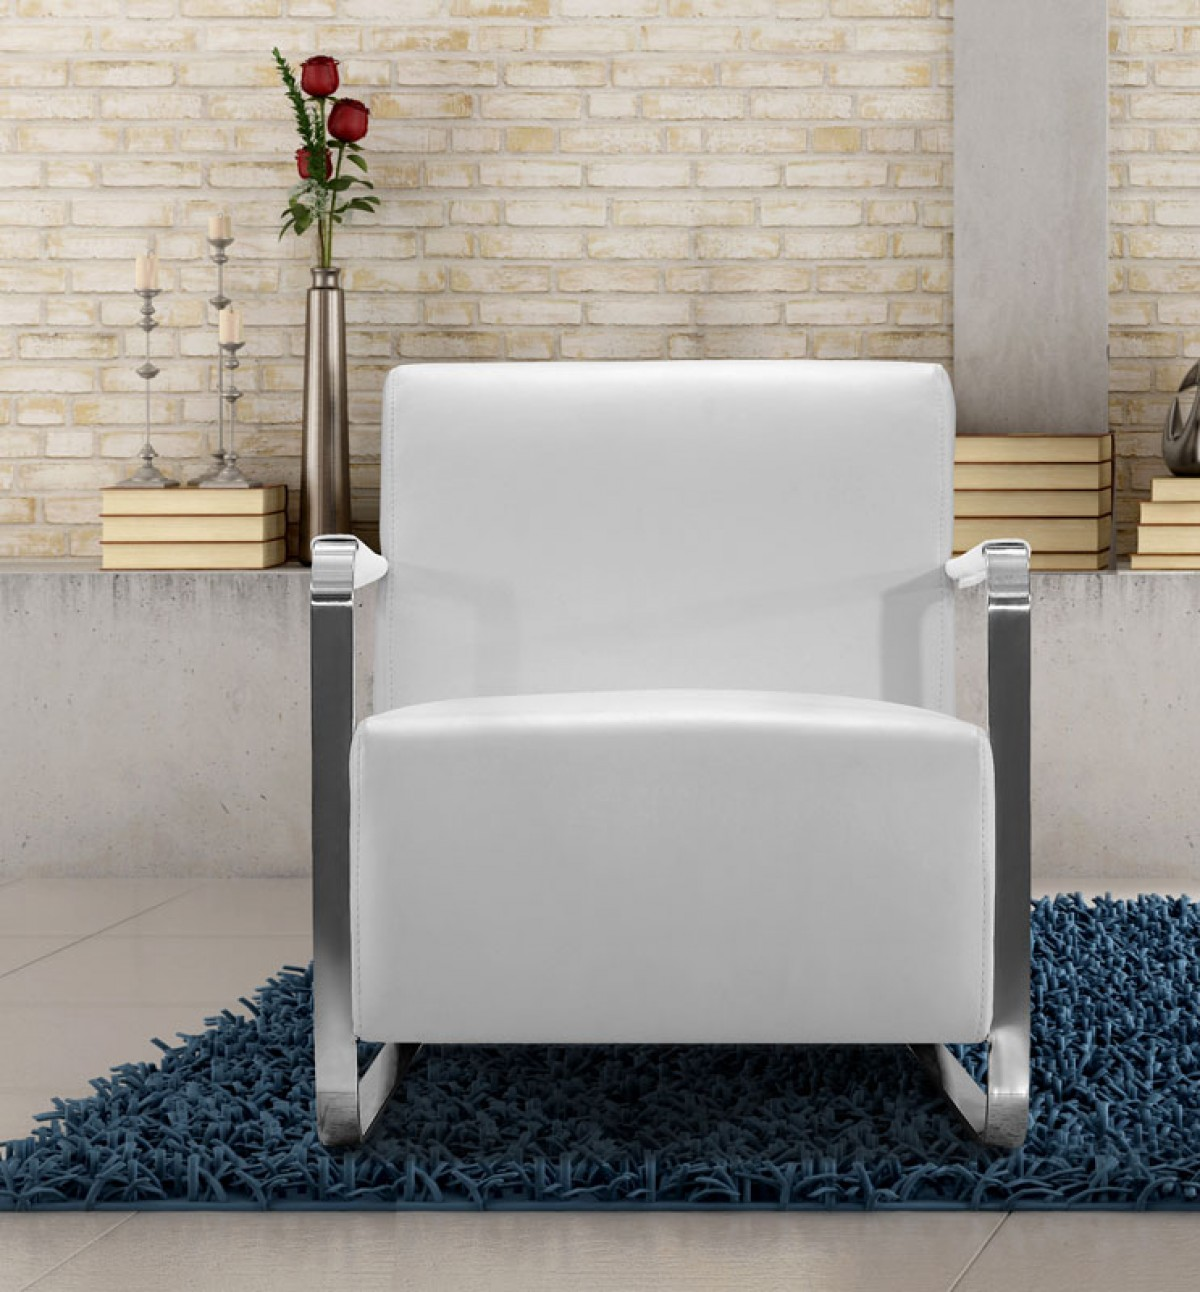 Modern White Leather Low Profile Lounge Chair Sacramento California VIG Divan